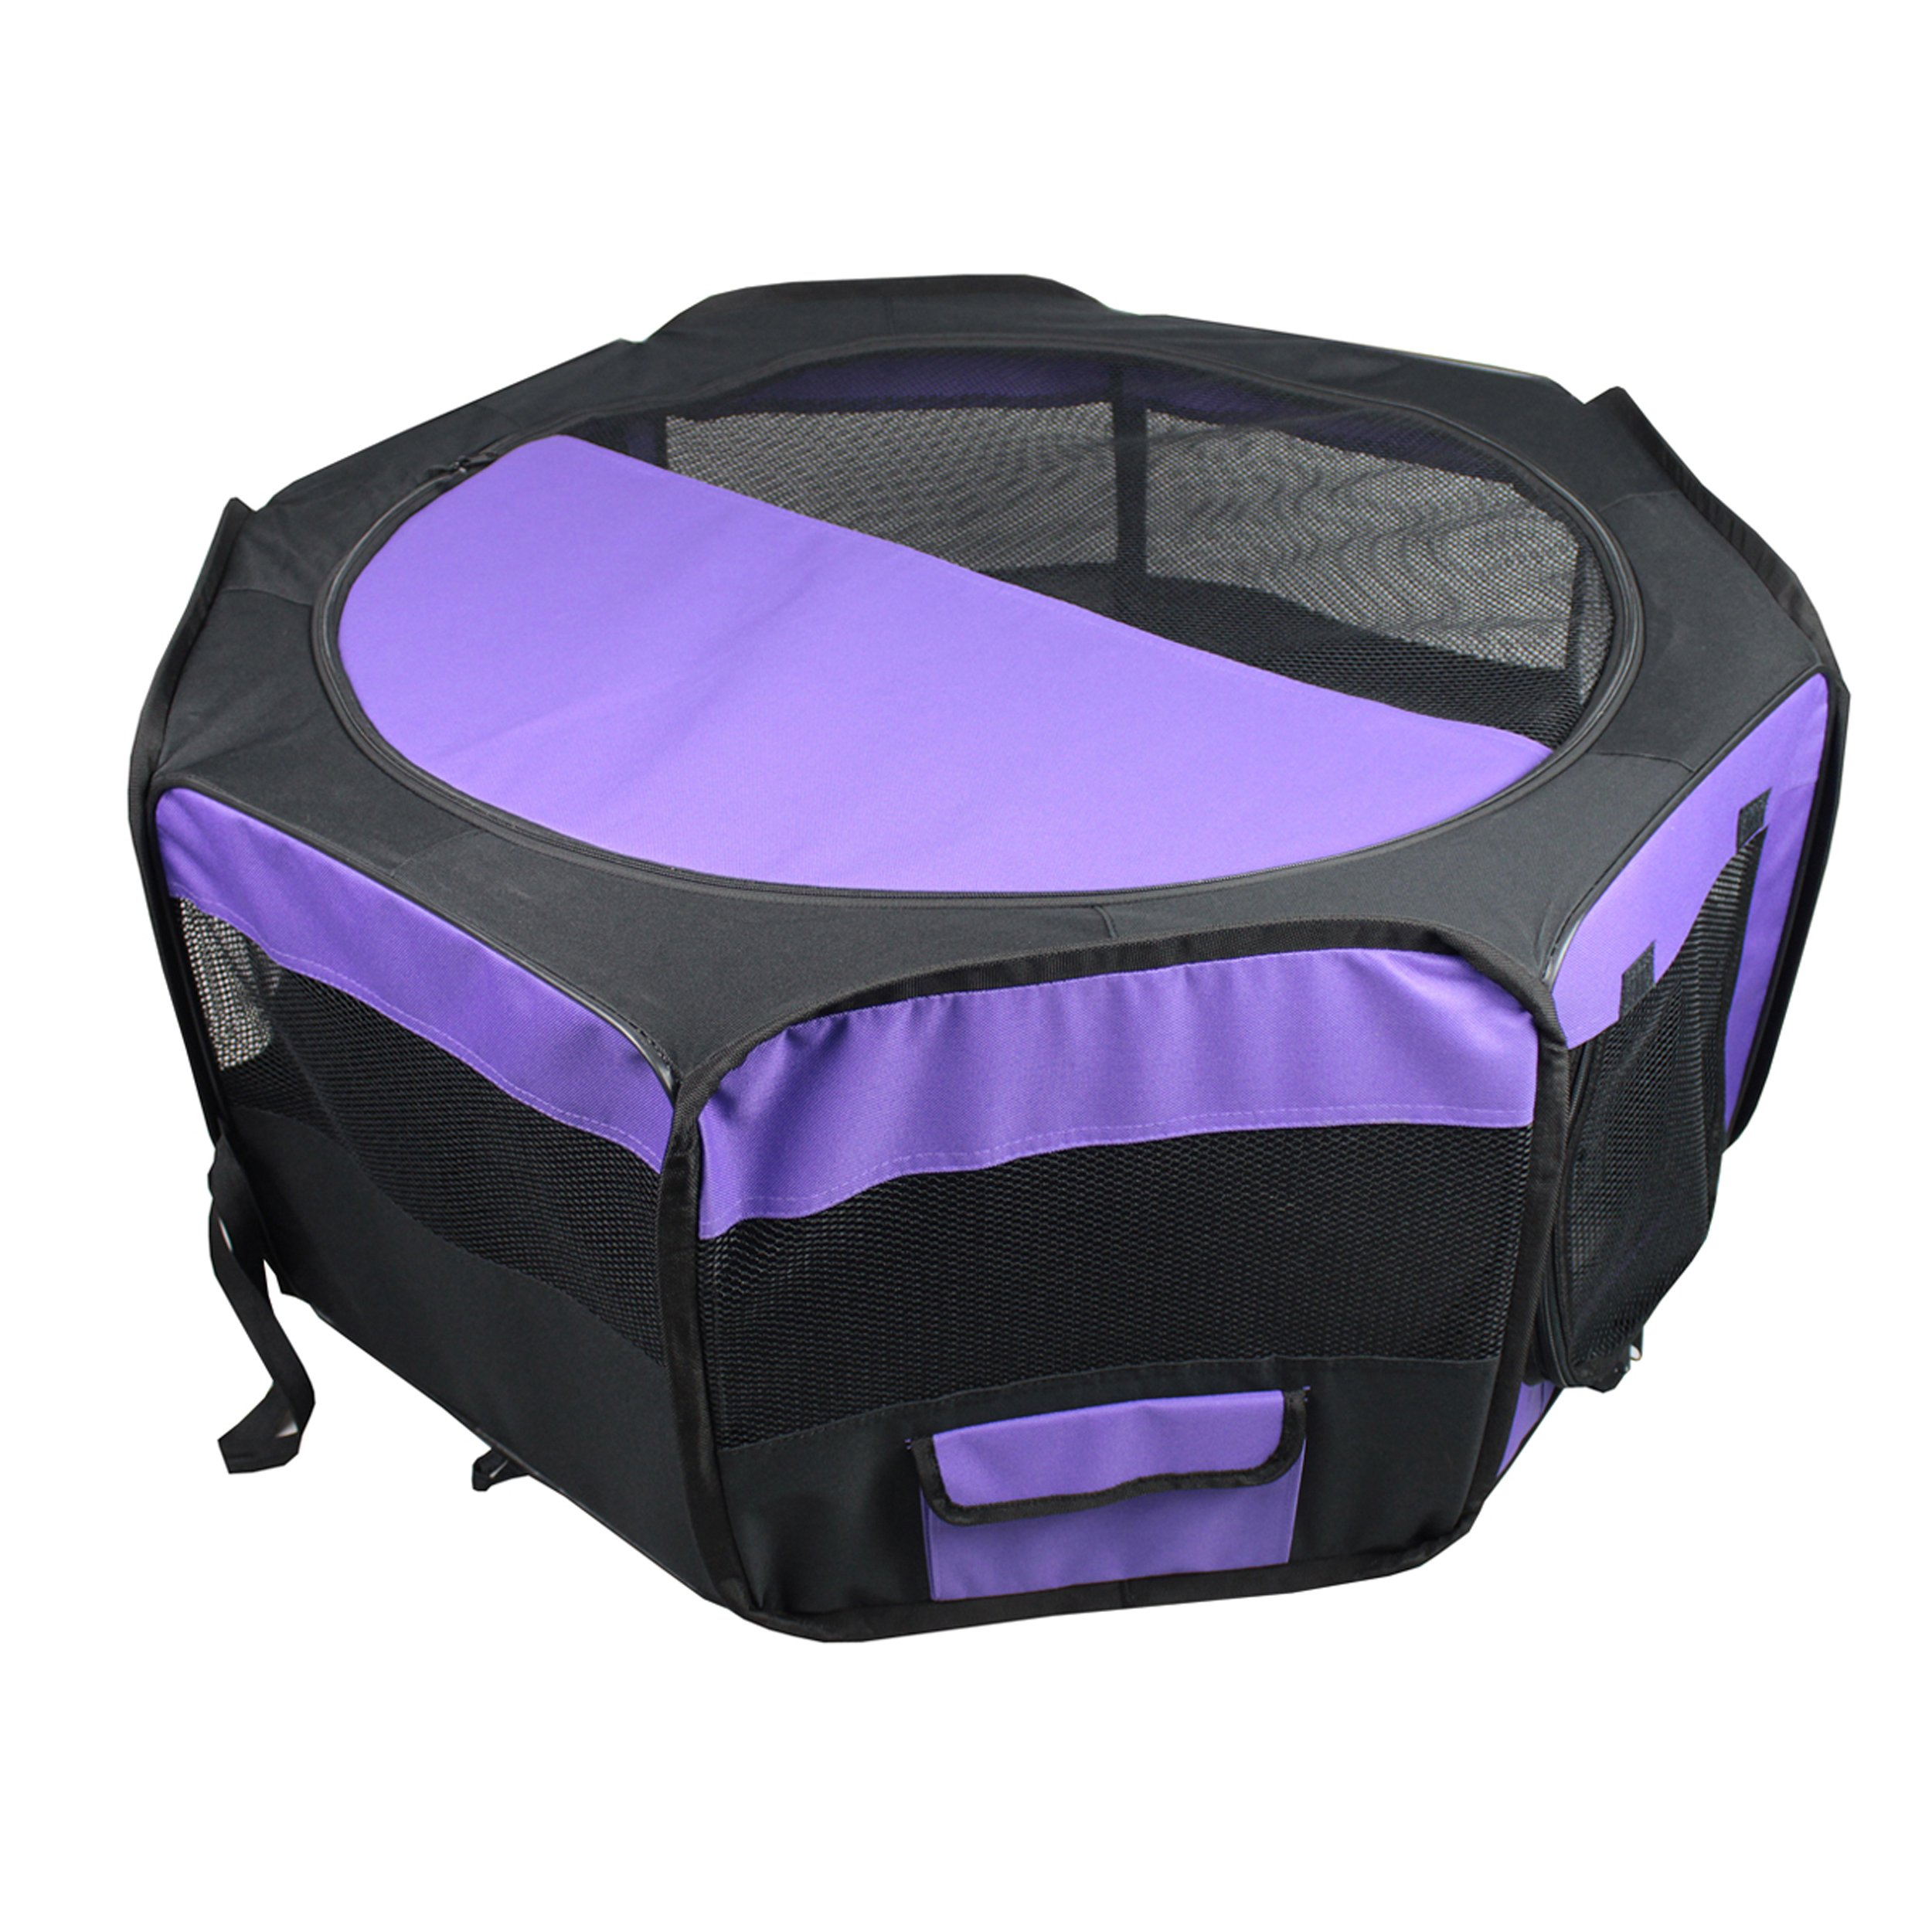 Iconic Pet Portable Pet Soft Play Pen, Purple, Small by Iconic Pet (Image #5)